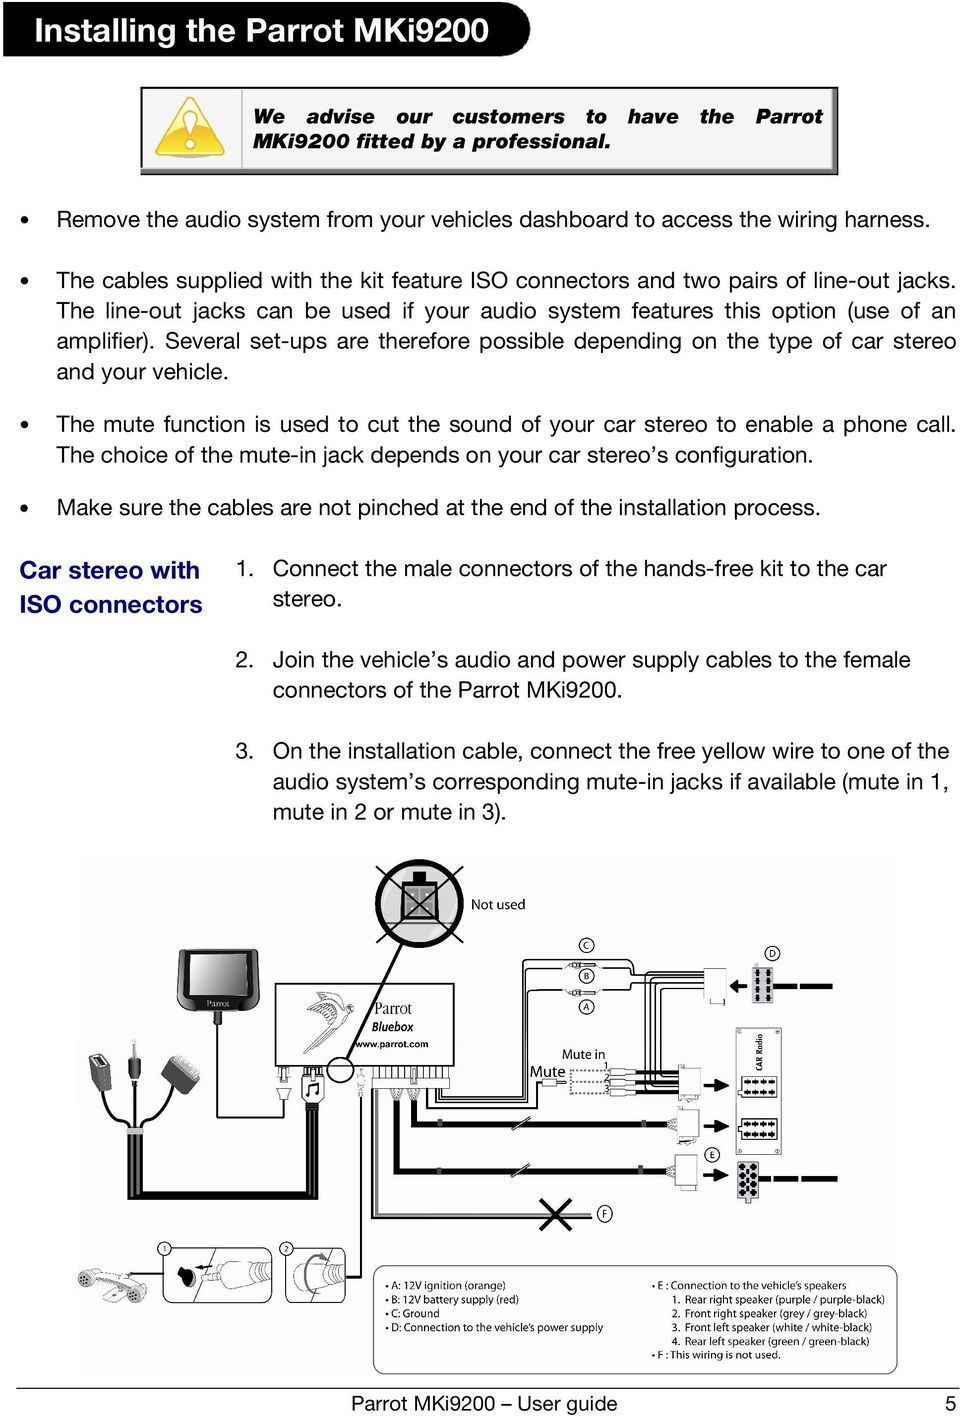 medium resolution of parrot mki9200 user guide 5 several set ups are therefore possible depending on the